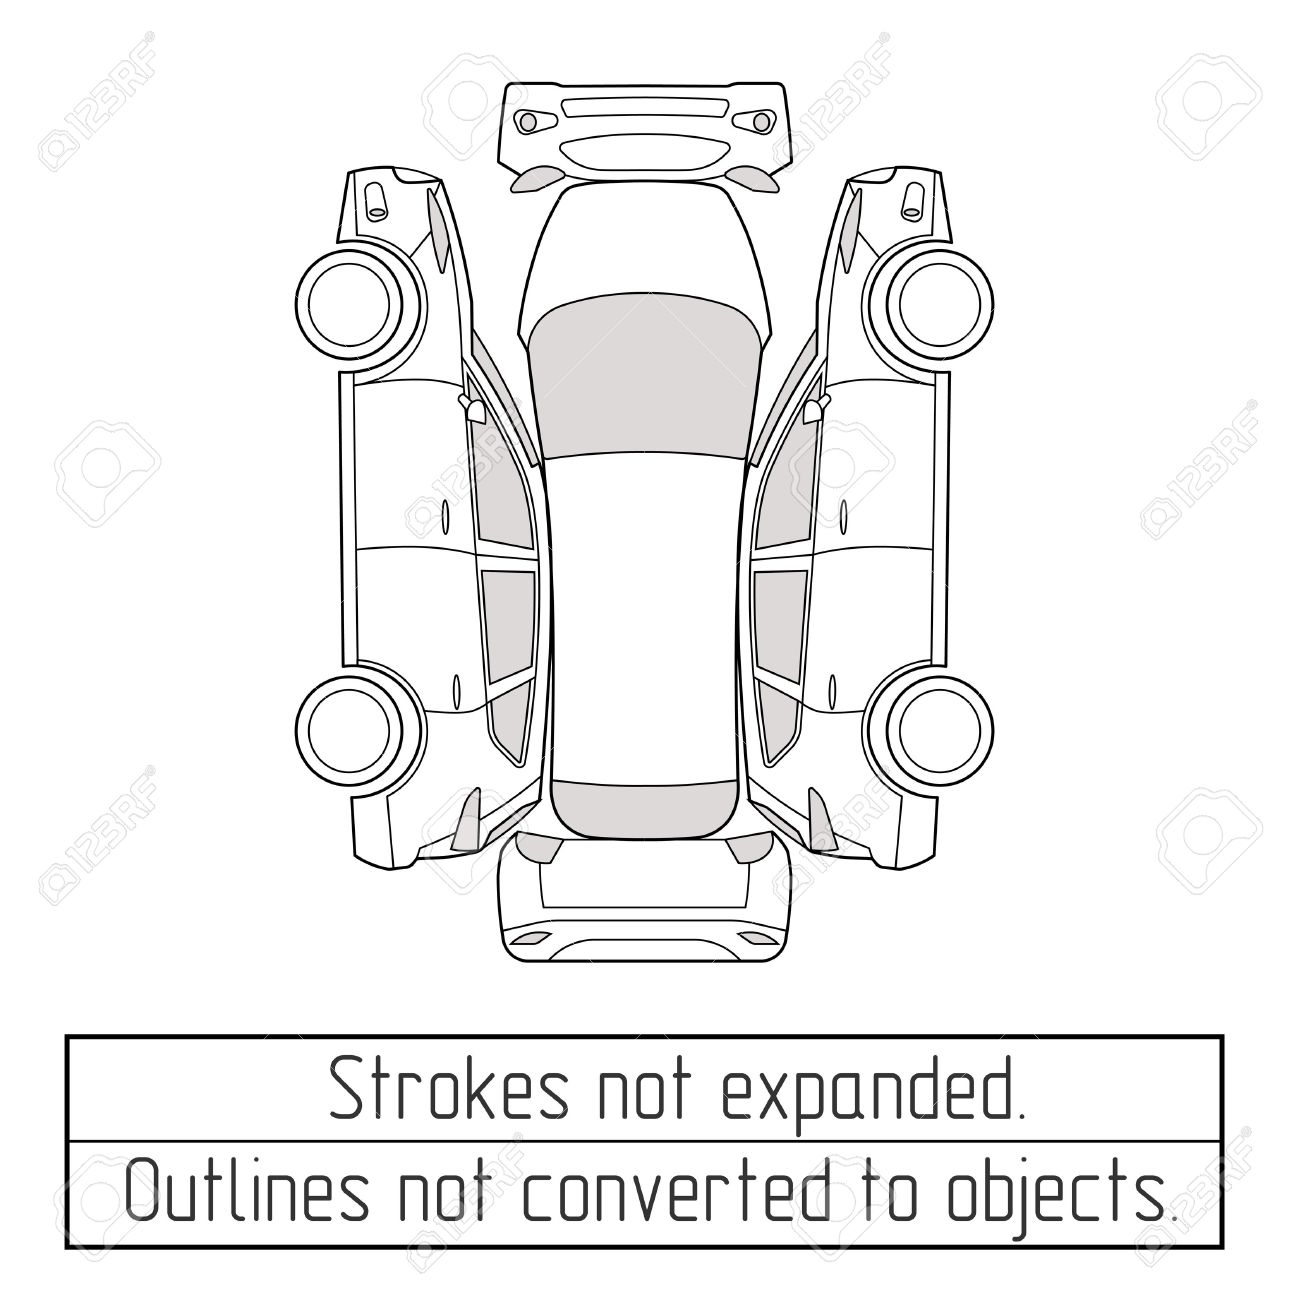 car suv nspectoin form drawing outline strokes not expanded - 70446606